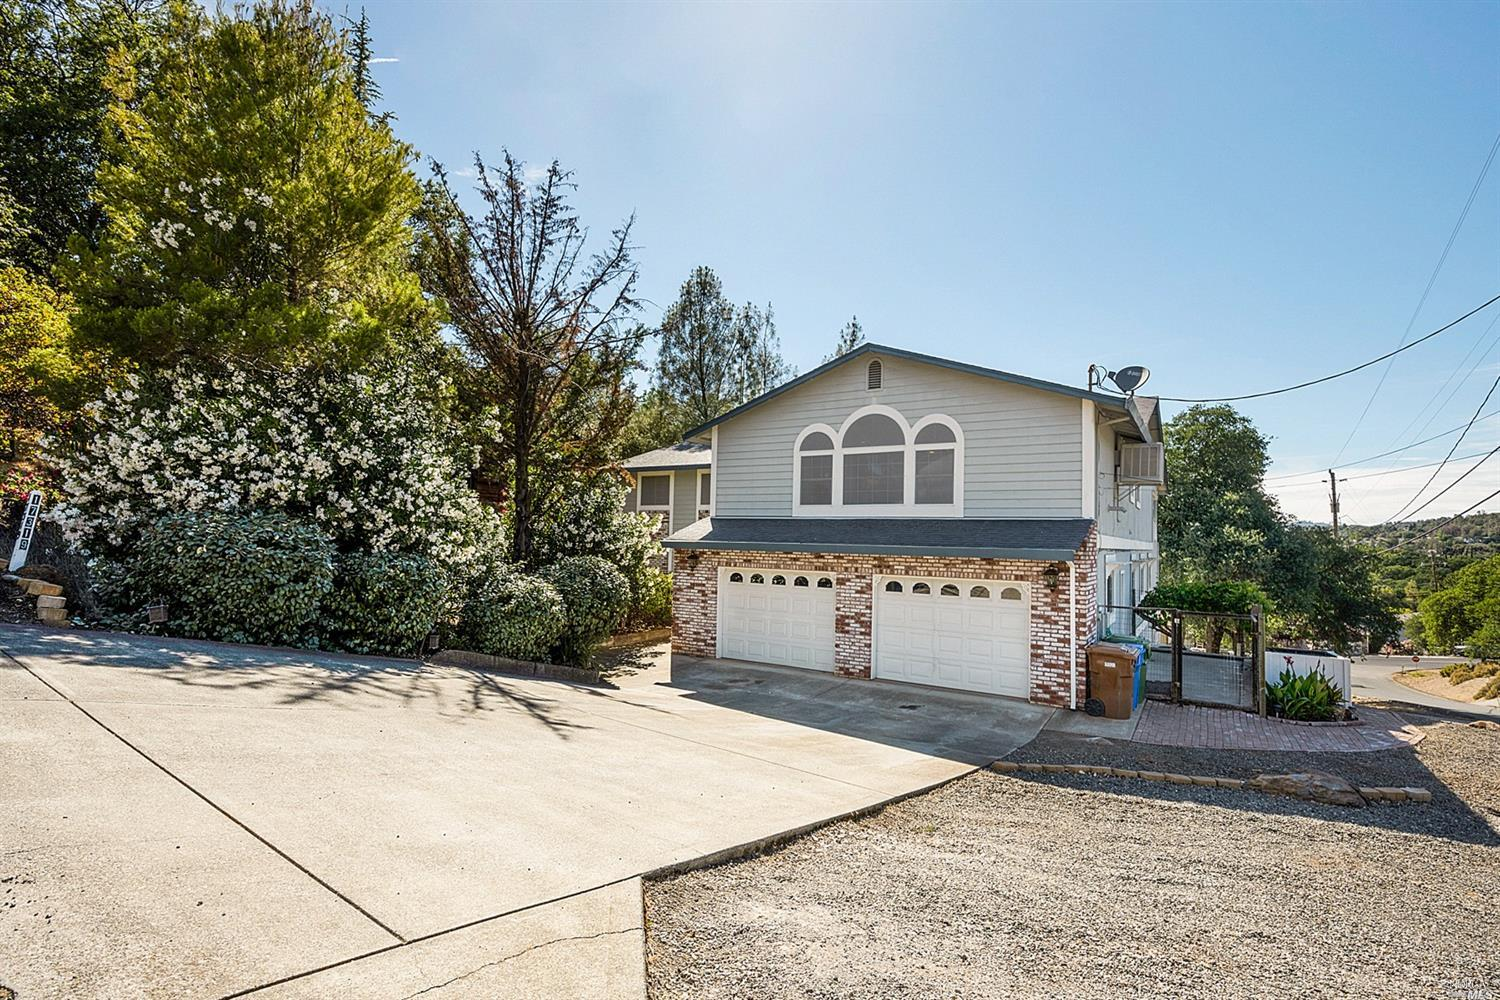 Beautiful Hidden Valley Lake home w/lake view. Tastefully decorated w/huge windows & inviting floor plan lends this to be a great home for entertaining.3 generous sized bedrooms + office and 2.5 bathrooms upstairs w/spacious L/D/F rooms,large kitchen with SS appliances & granite countertops.As well,a covered porch that runs the length of the home is right off the dining room for ease w/bbq,or eating outside & enjoying the view.Downstairs has 2 more bedrooms, 1 full bathroom with living area that was added on in 2006.Downstairs area could easily be used as separate living space for income or in-law quarters.Huge pantry was added w/laundry chute directly to the laundry room downstairs.Inside has newer water resistant wood laminate flooring an